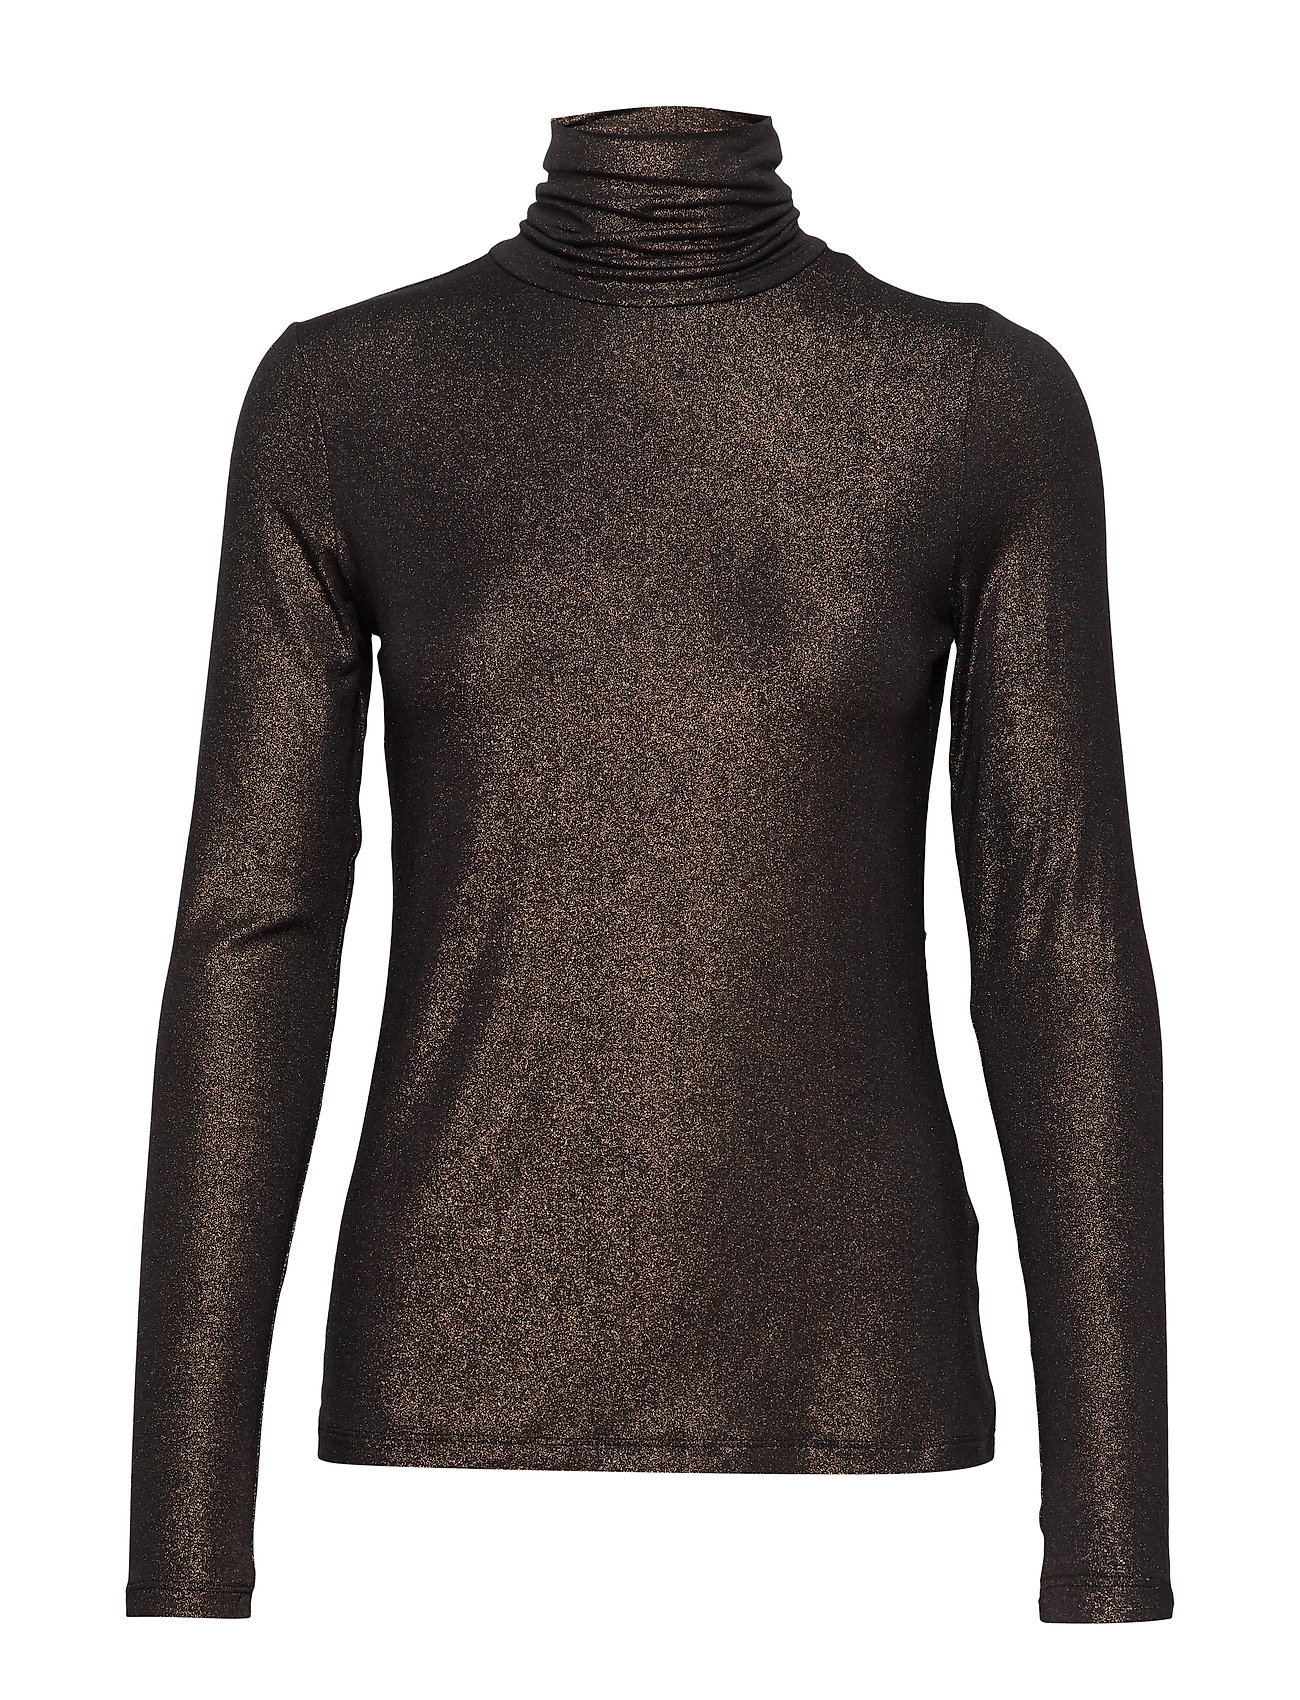 Banana Republic Metallic Soft Stretch Turtleneck T-Shirt - BLACK K-100